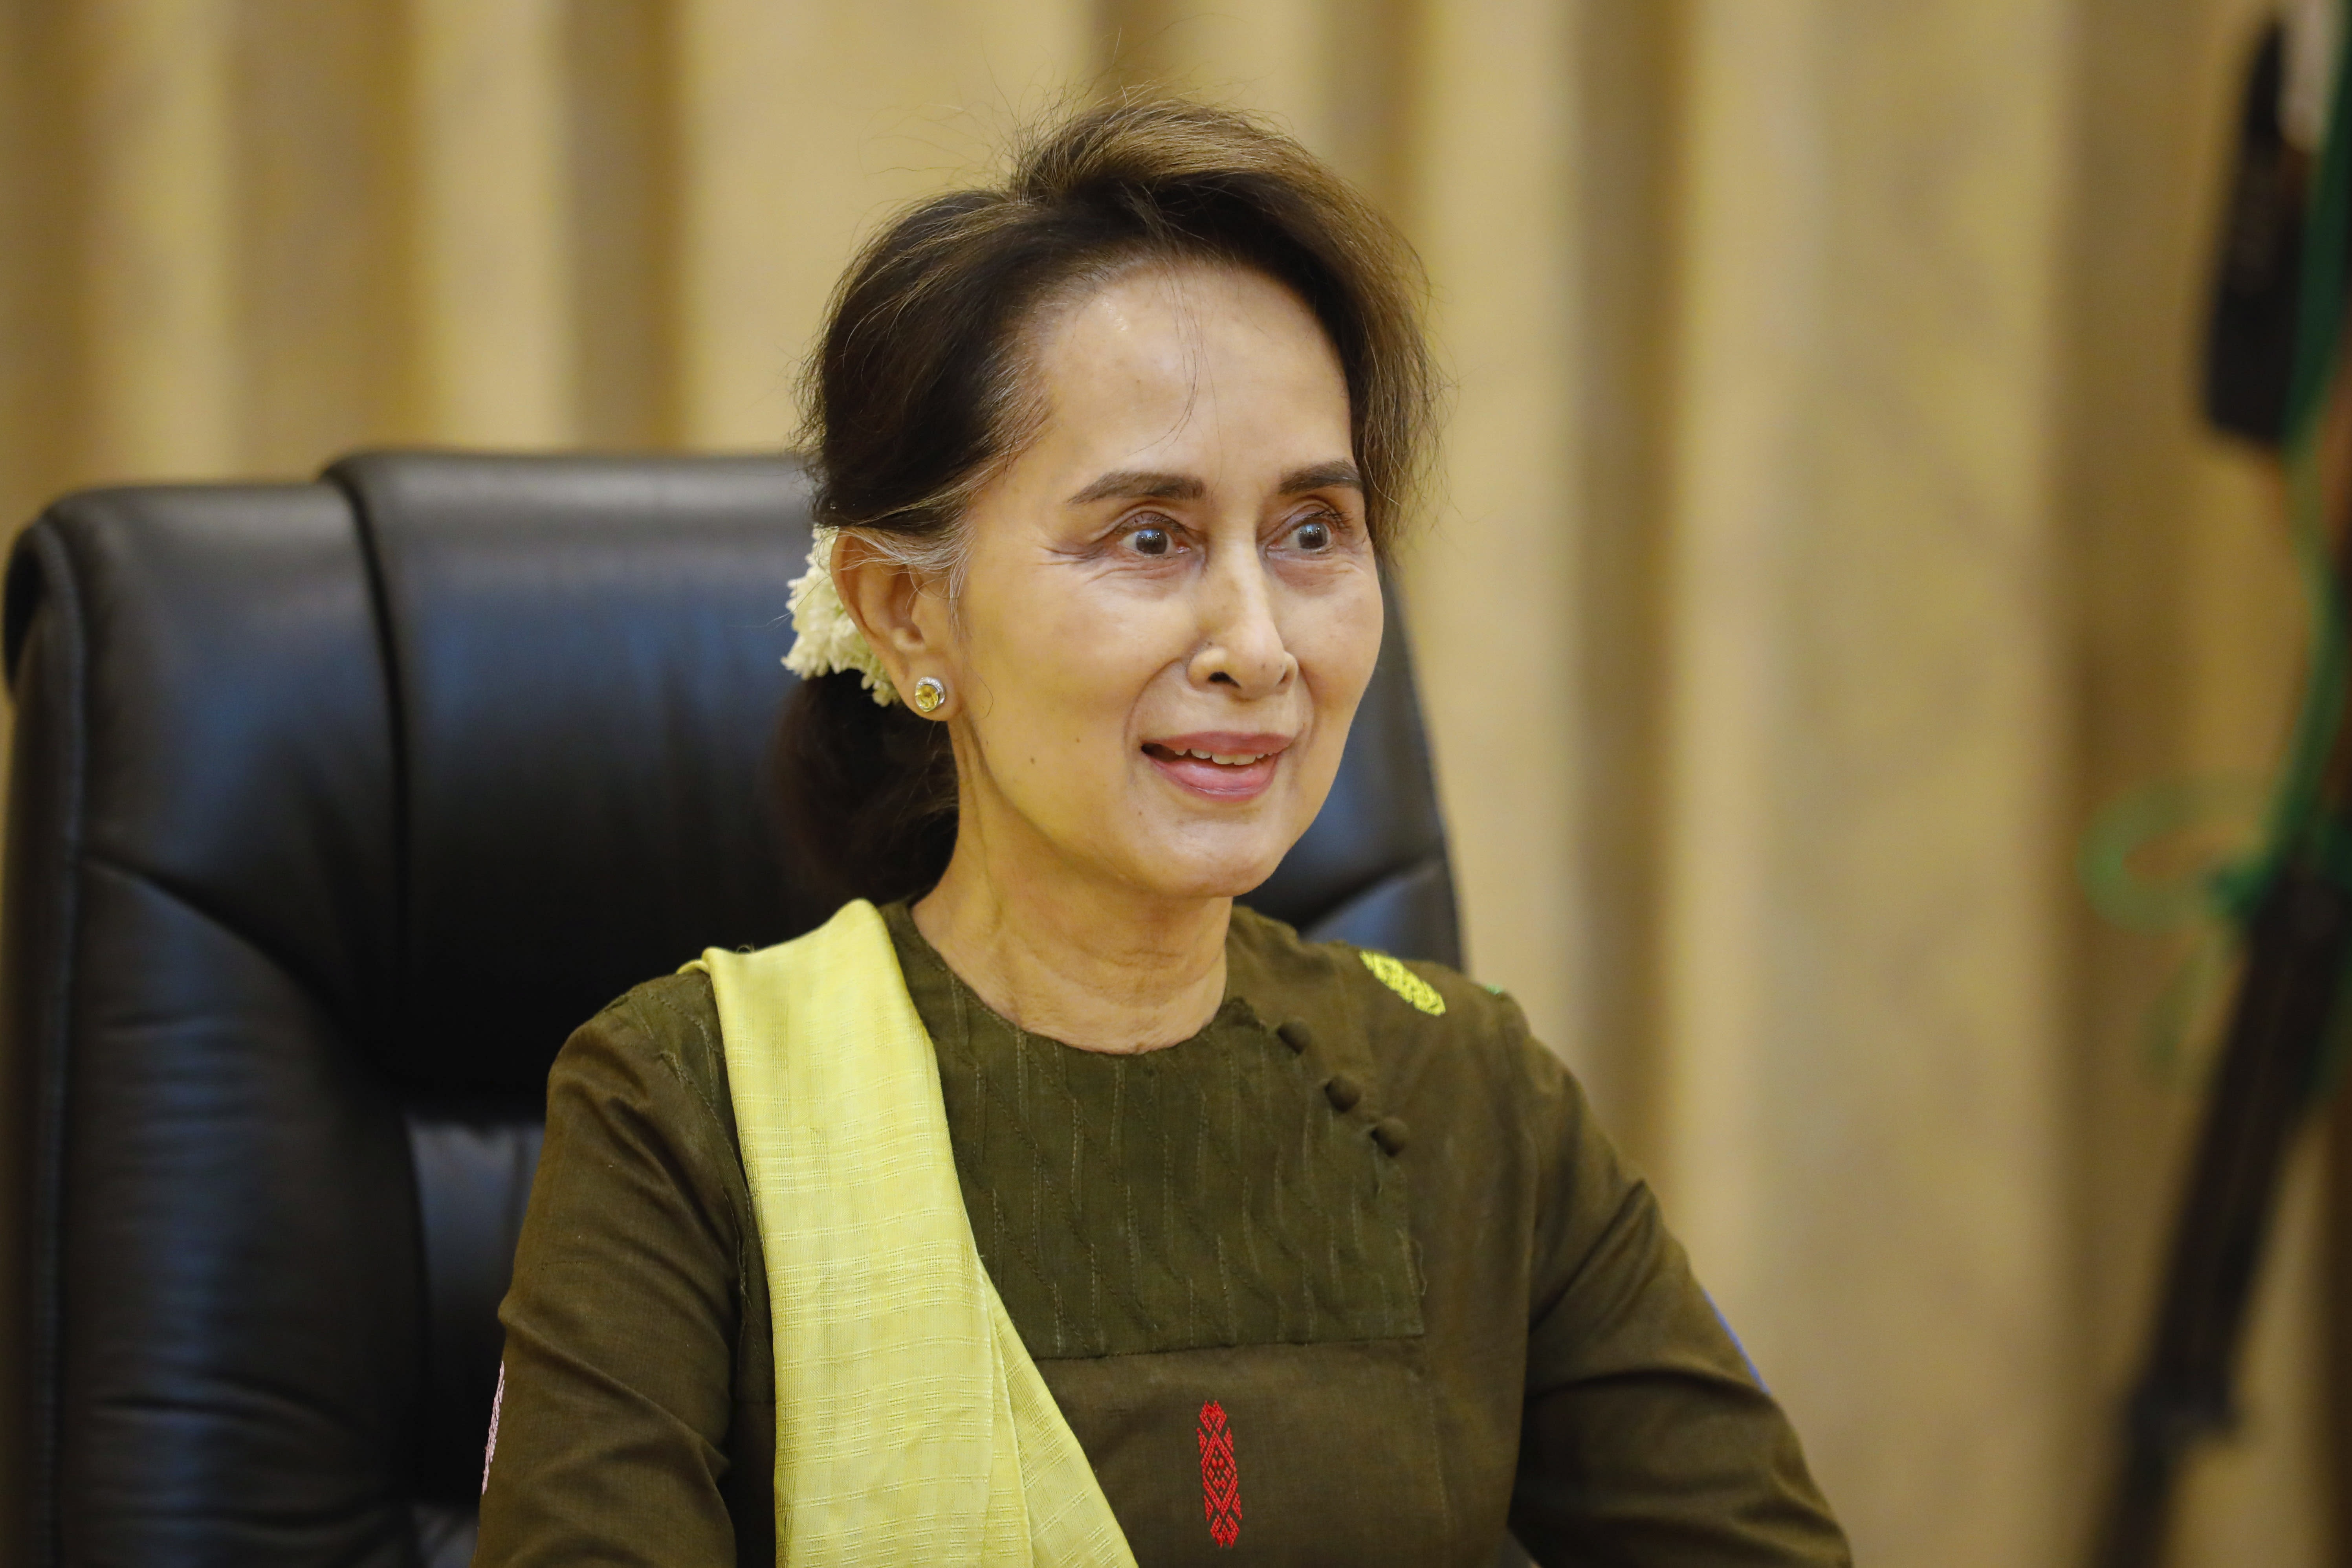 In this handout image provided by the Myanmar State Counsellor Office, Myanmar leader Aung San Suu Kyi is shown while she attends a video conference, Friday, July 3, 2020, in Naypyitaw, Myanmar. Suu Kyi expressed sadness Friday over a landslide at a jade mining site in the country's north that took over 100 lives, blaming the tragedy on joblessness. (Myanmar State Counsellor Office via AP)